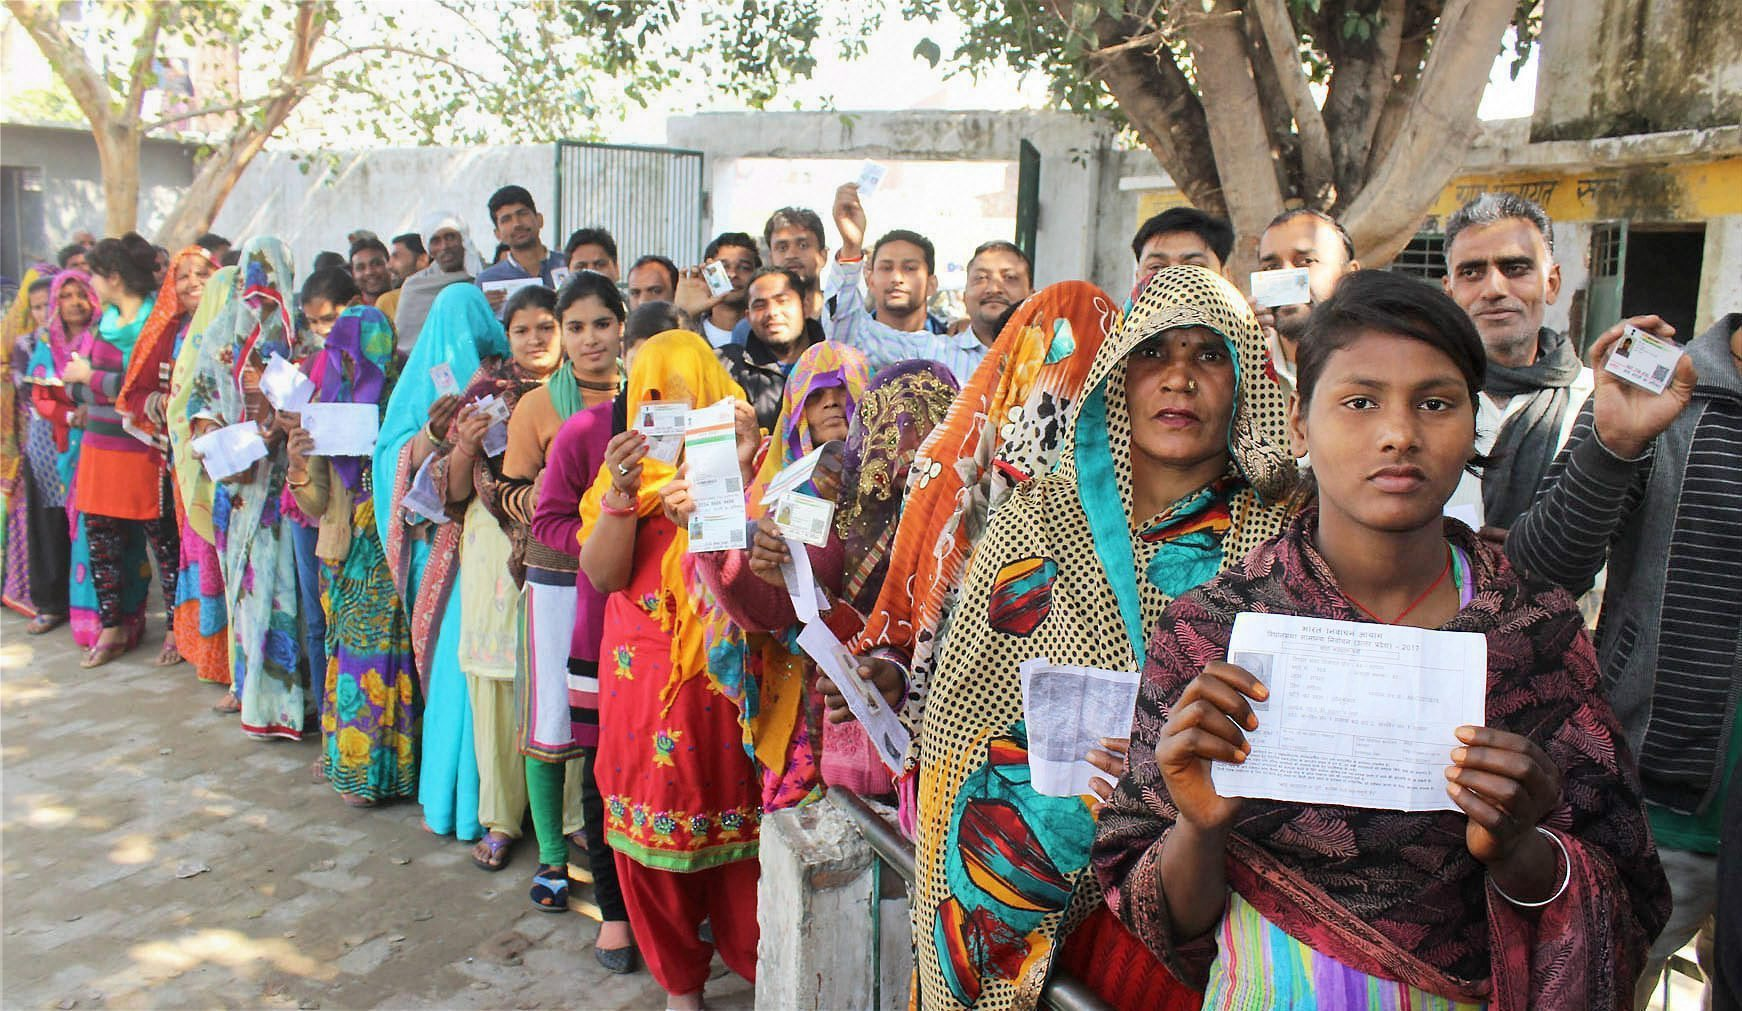 Voters wait in queue to cast their votes during the first phase of UP Assembly polls in Meerut district on Saturday. Credit: PTI